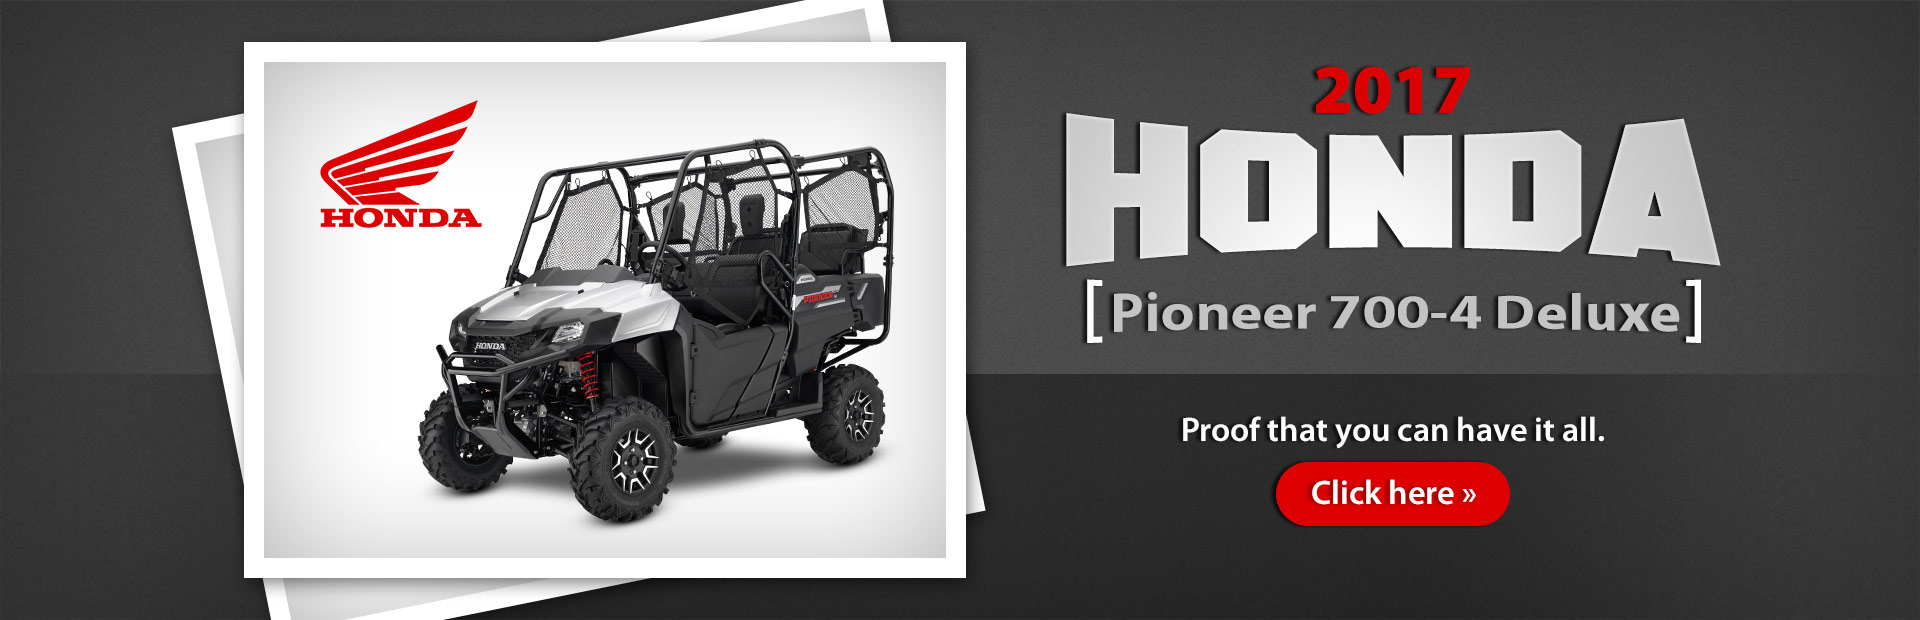 The 2017 Honda Pioneer 700-4 Deluxe: Click here for details.